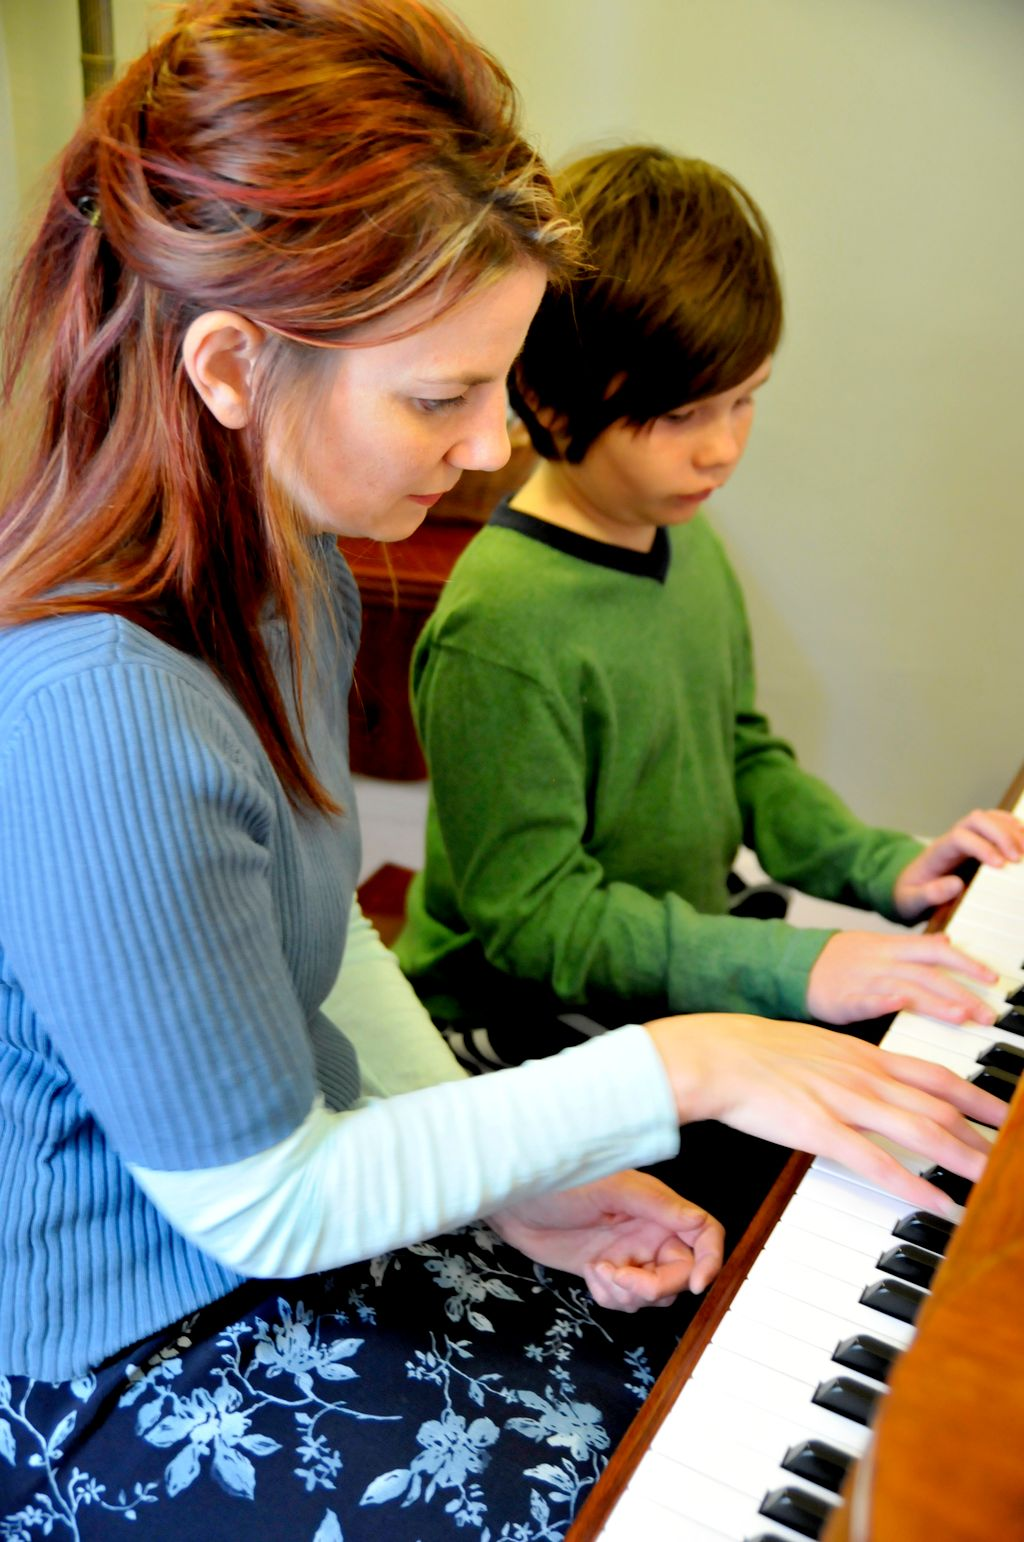 St. Paul Music Lessons, LLC